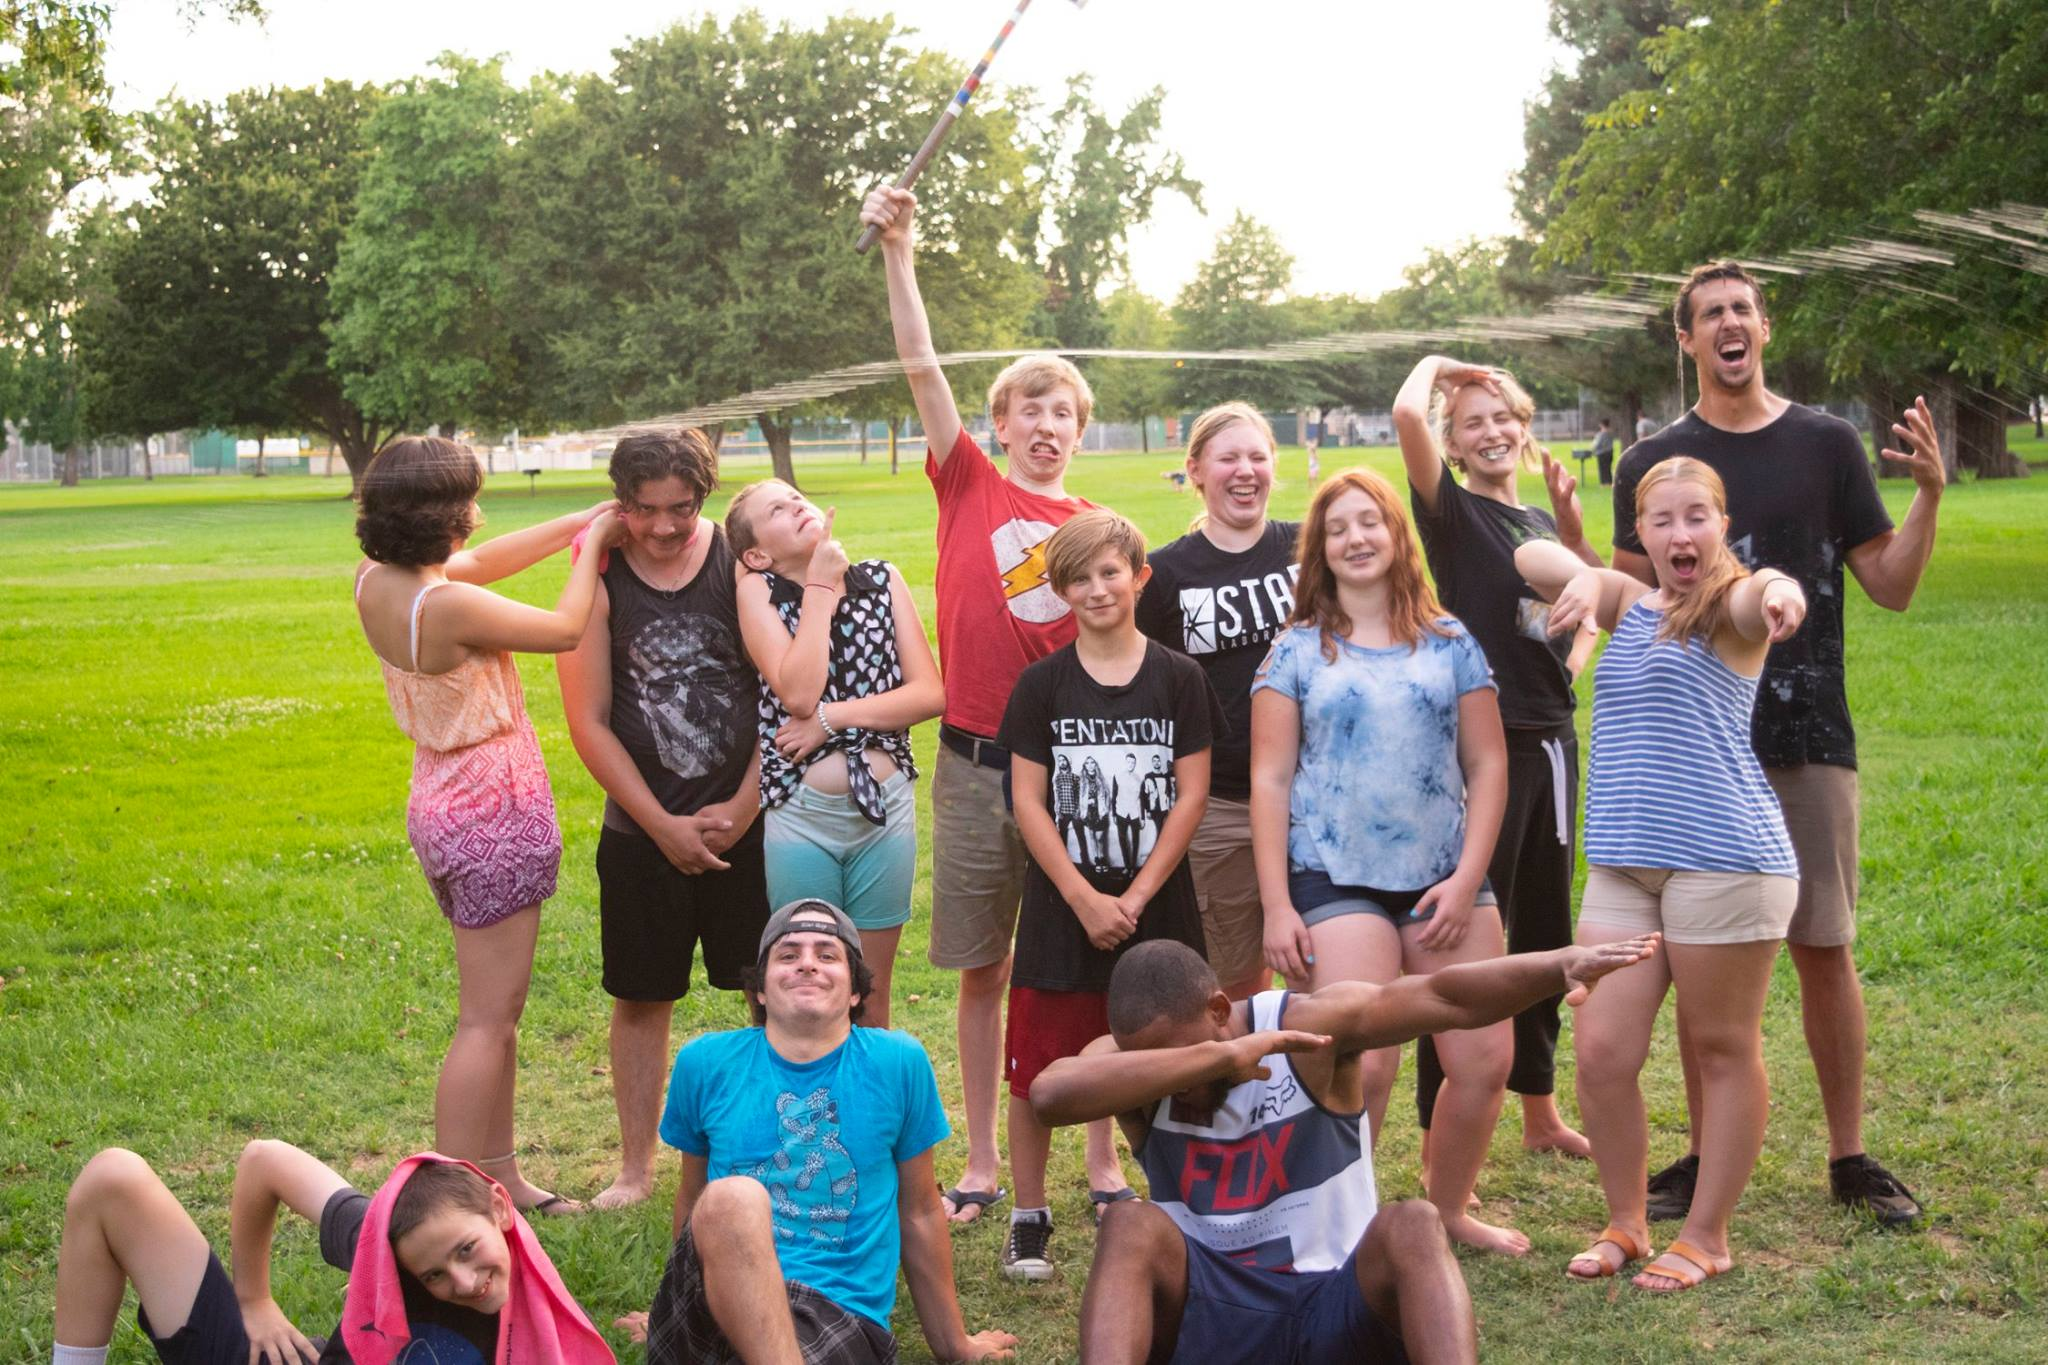 Impact Youth Group - From epic nerf guns wars, to discussions on who Jesus is and why He is so important to our lives. Impact Youth Group is for Middle and High School age students…